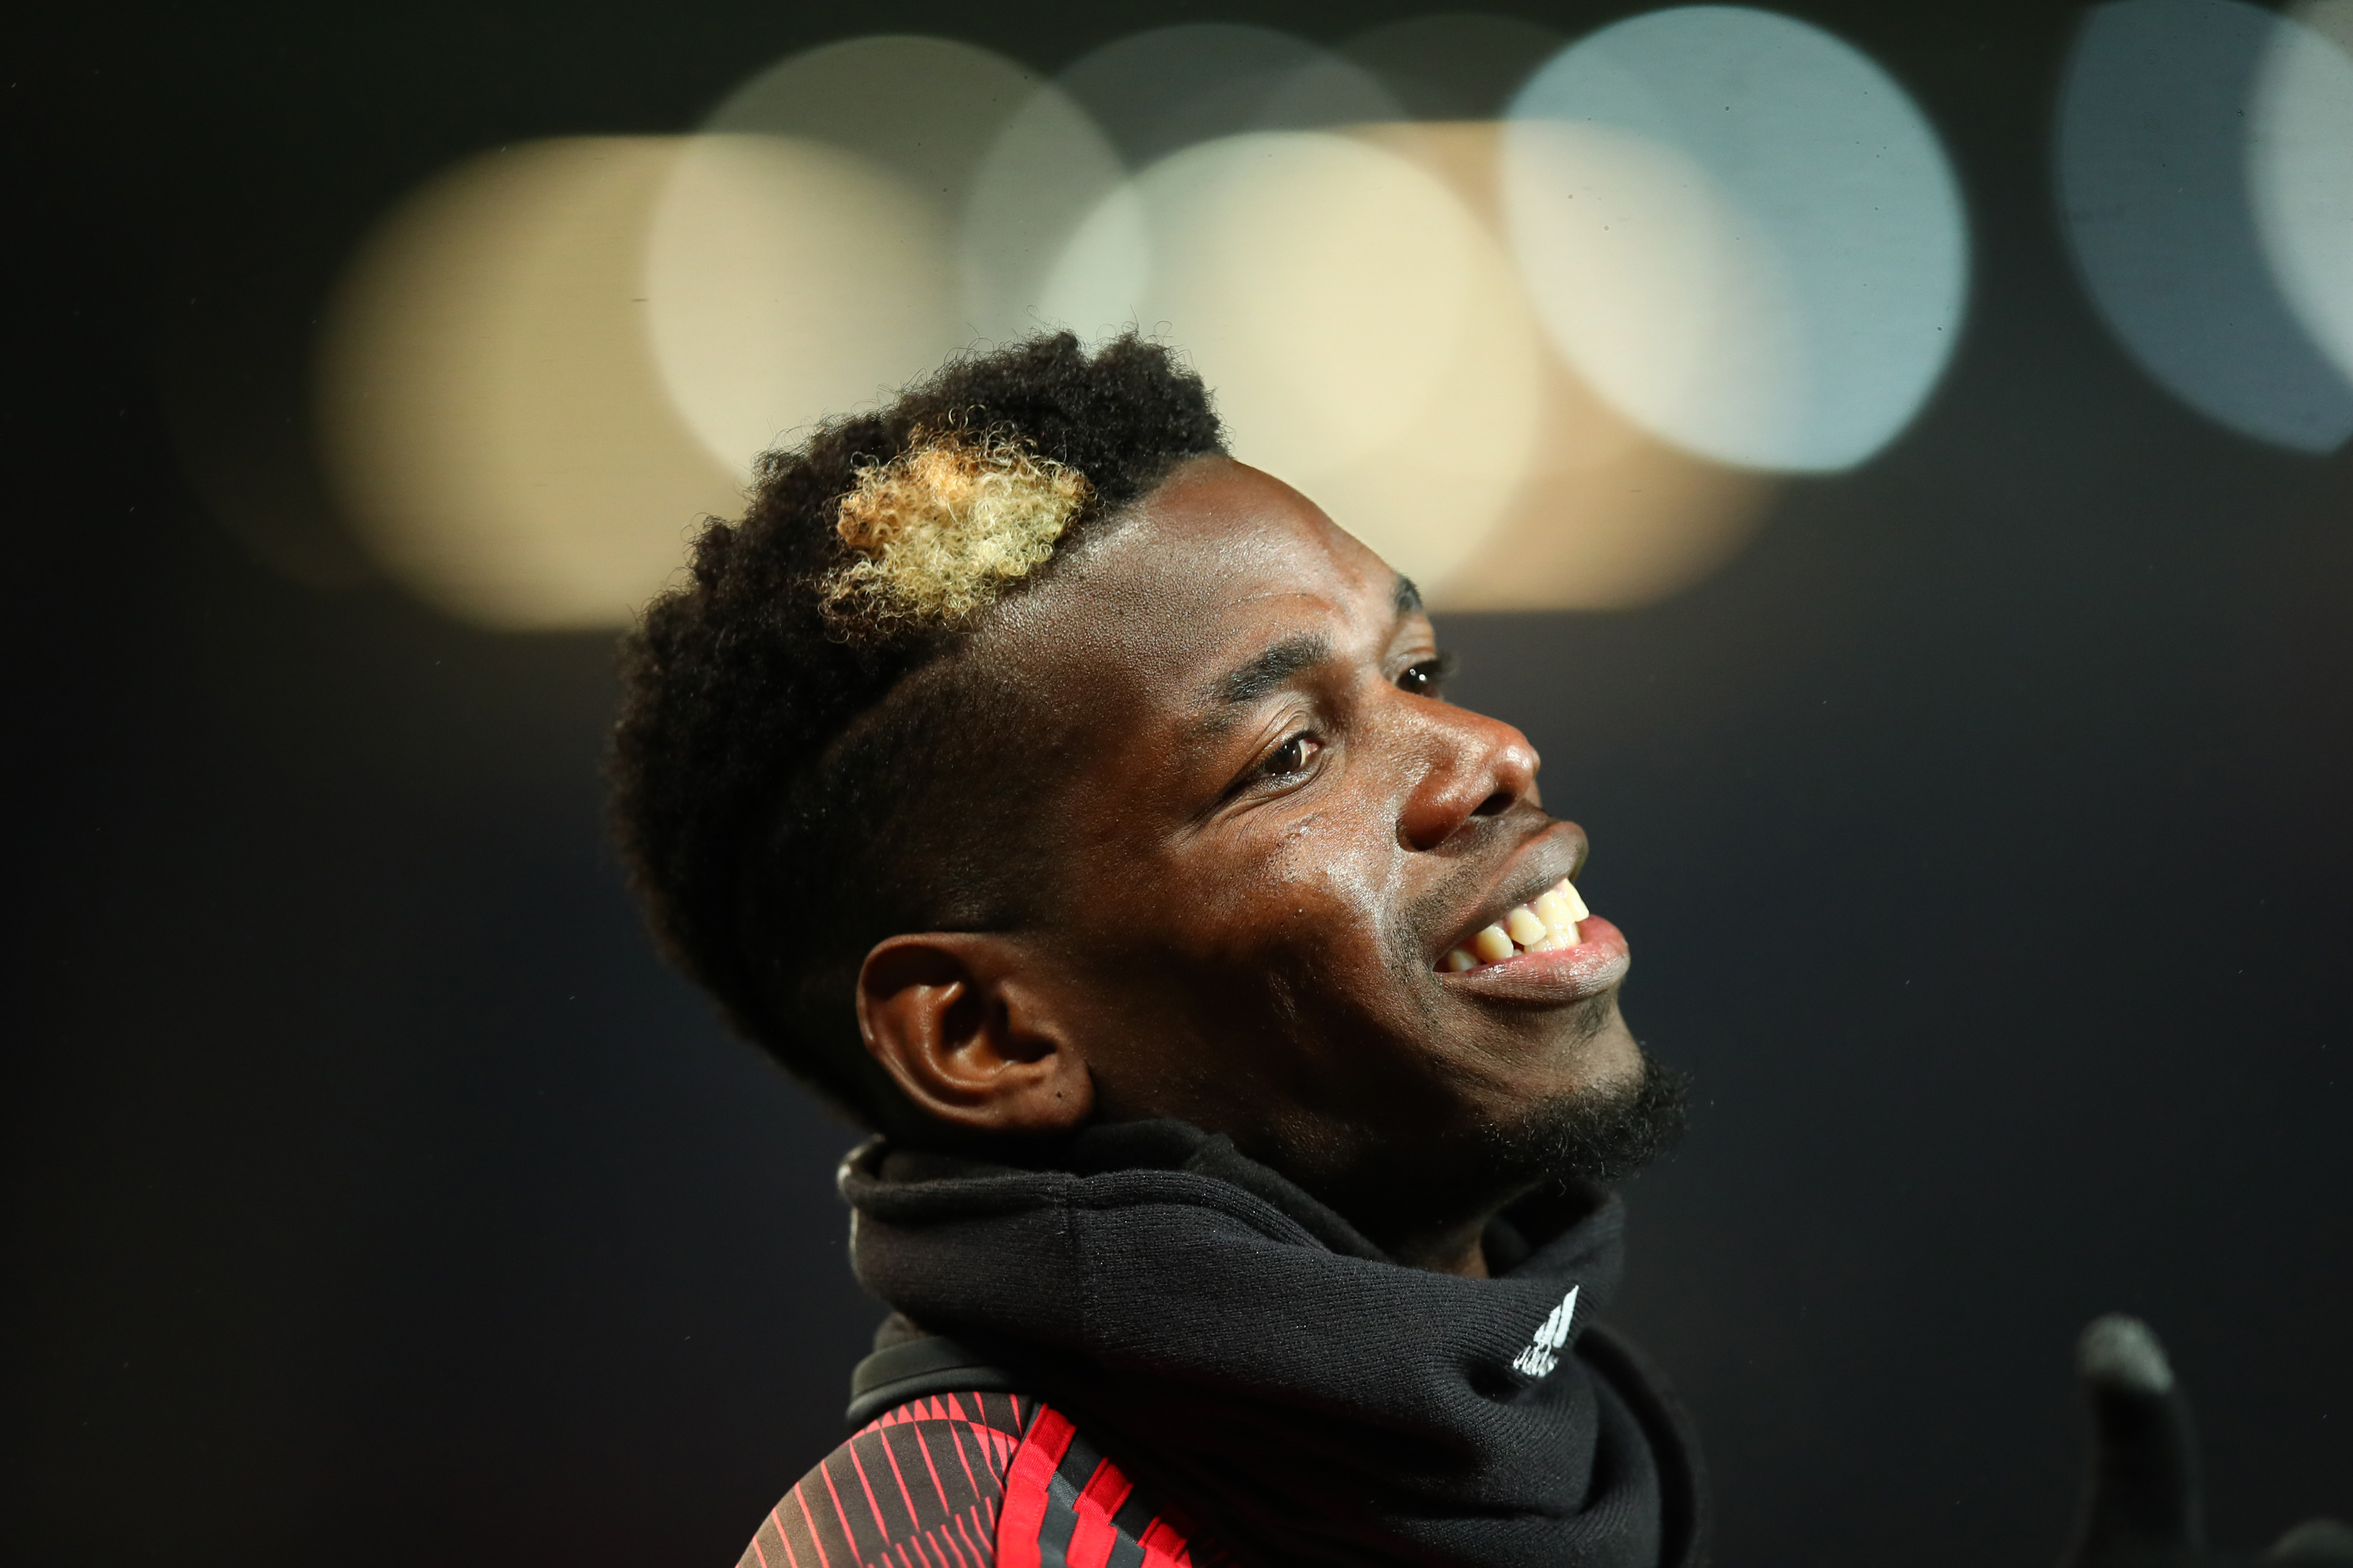 Manchester United make huge and unexpected demand for Paul Pogba